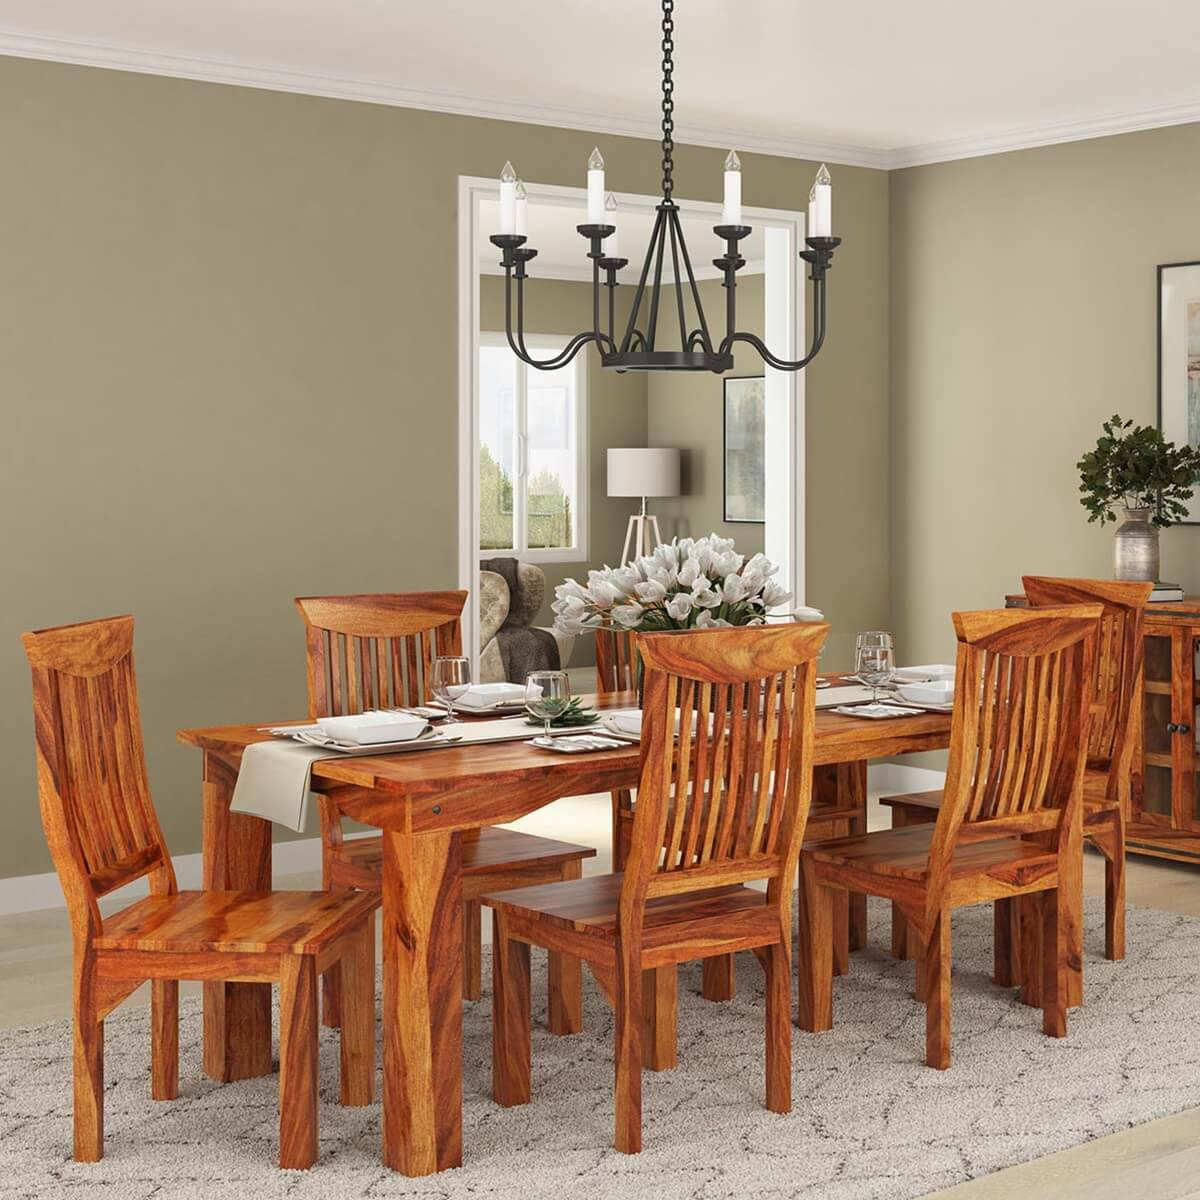 Rustic Dining Room Table Sets: Idaho Modern Rustic Solid Wood Dining Table & Chair Set